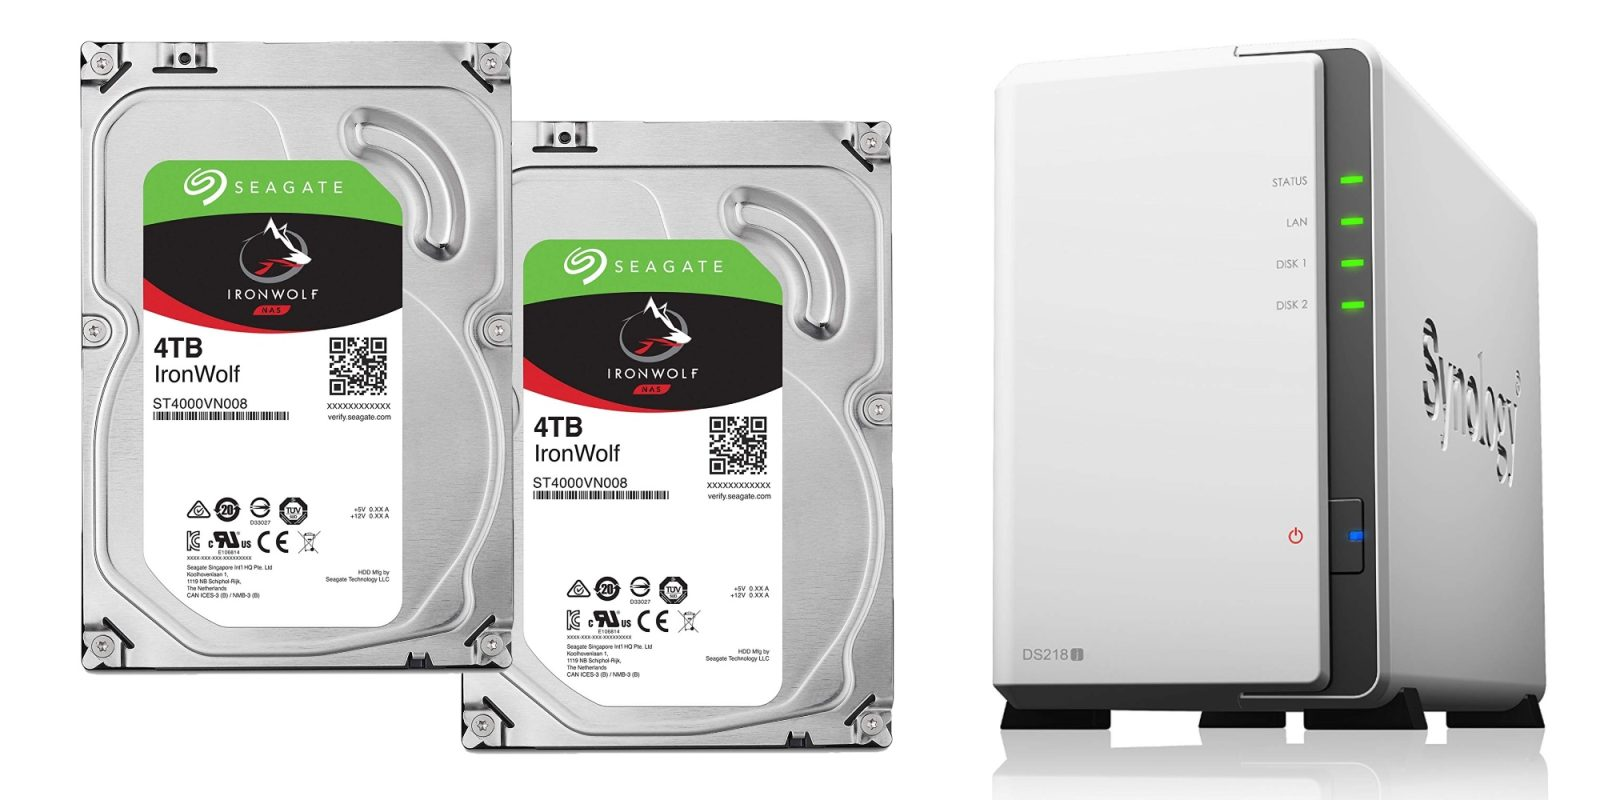 Combo Synology's 2-bay NAS with 8TB of Seagate storage at $310 ($370 value)